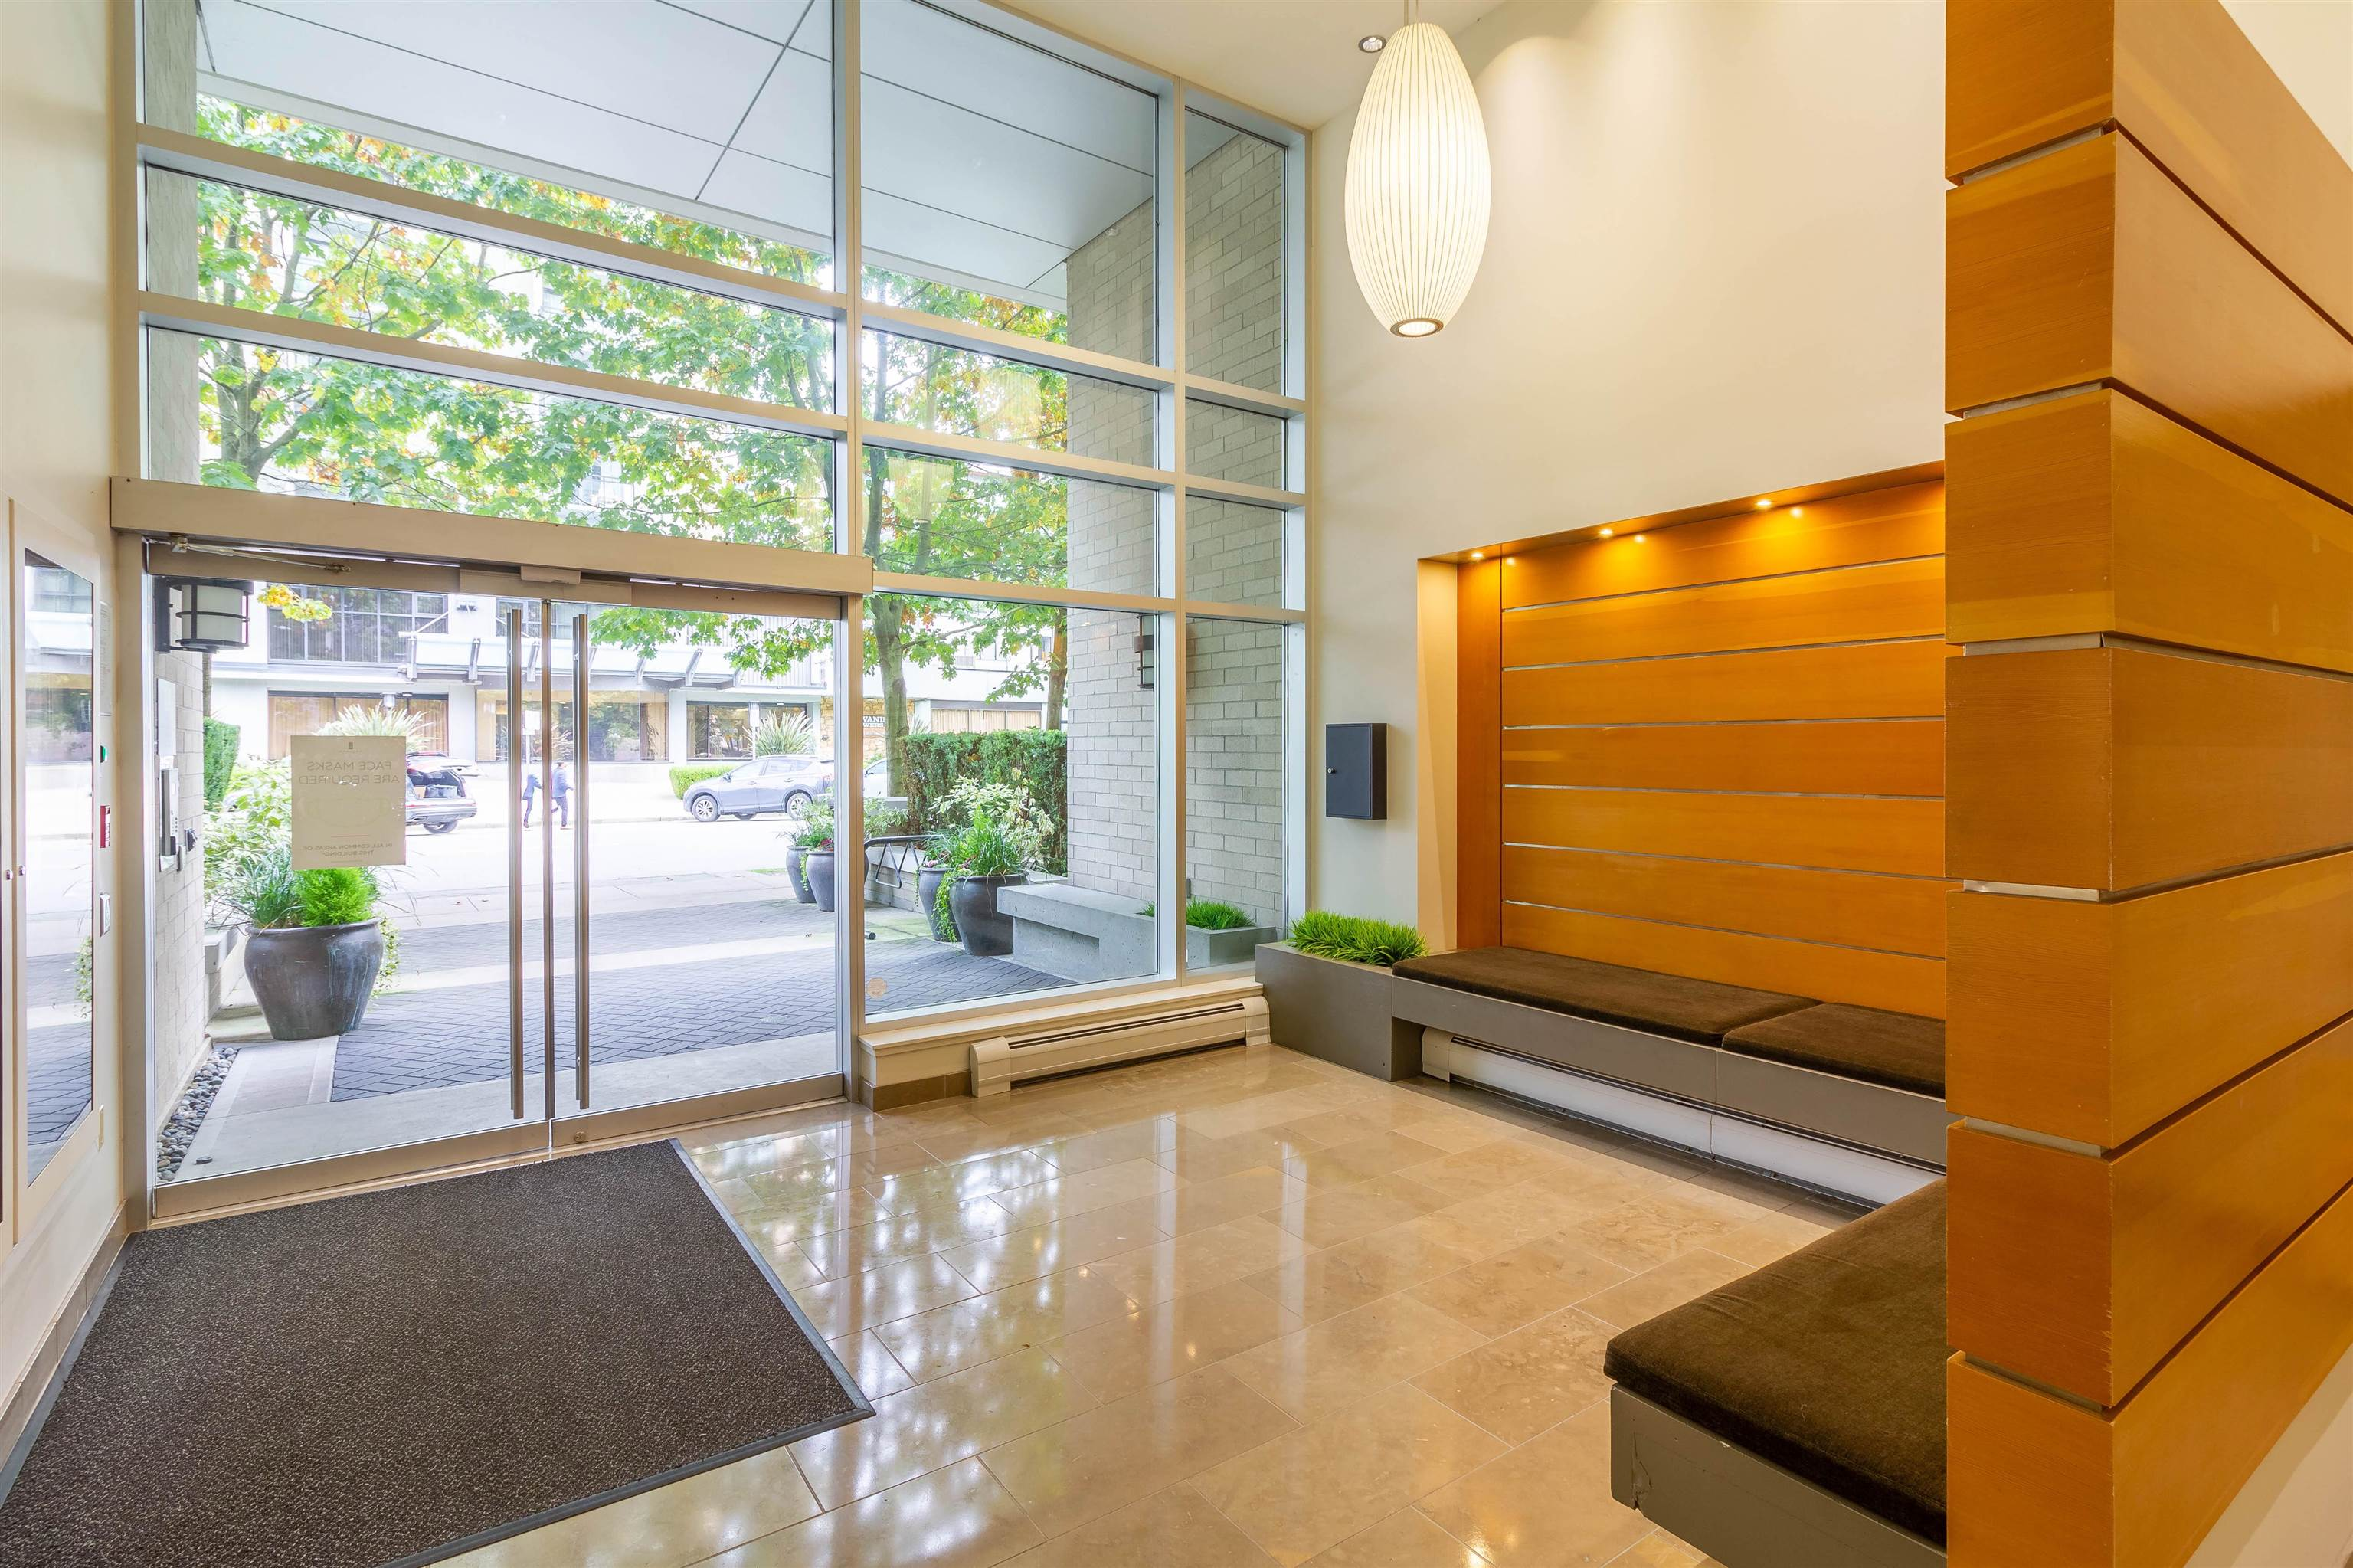 208 175 W 2ND STREET - Lower Lonsdale Apartment/Condo for sale, 1 Bedroom (R2625562) - #28